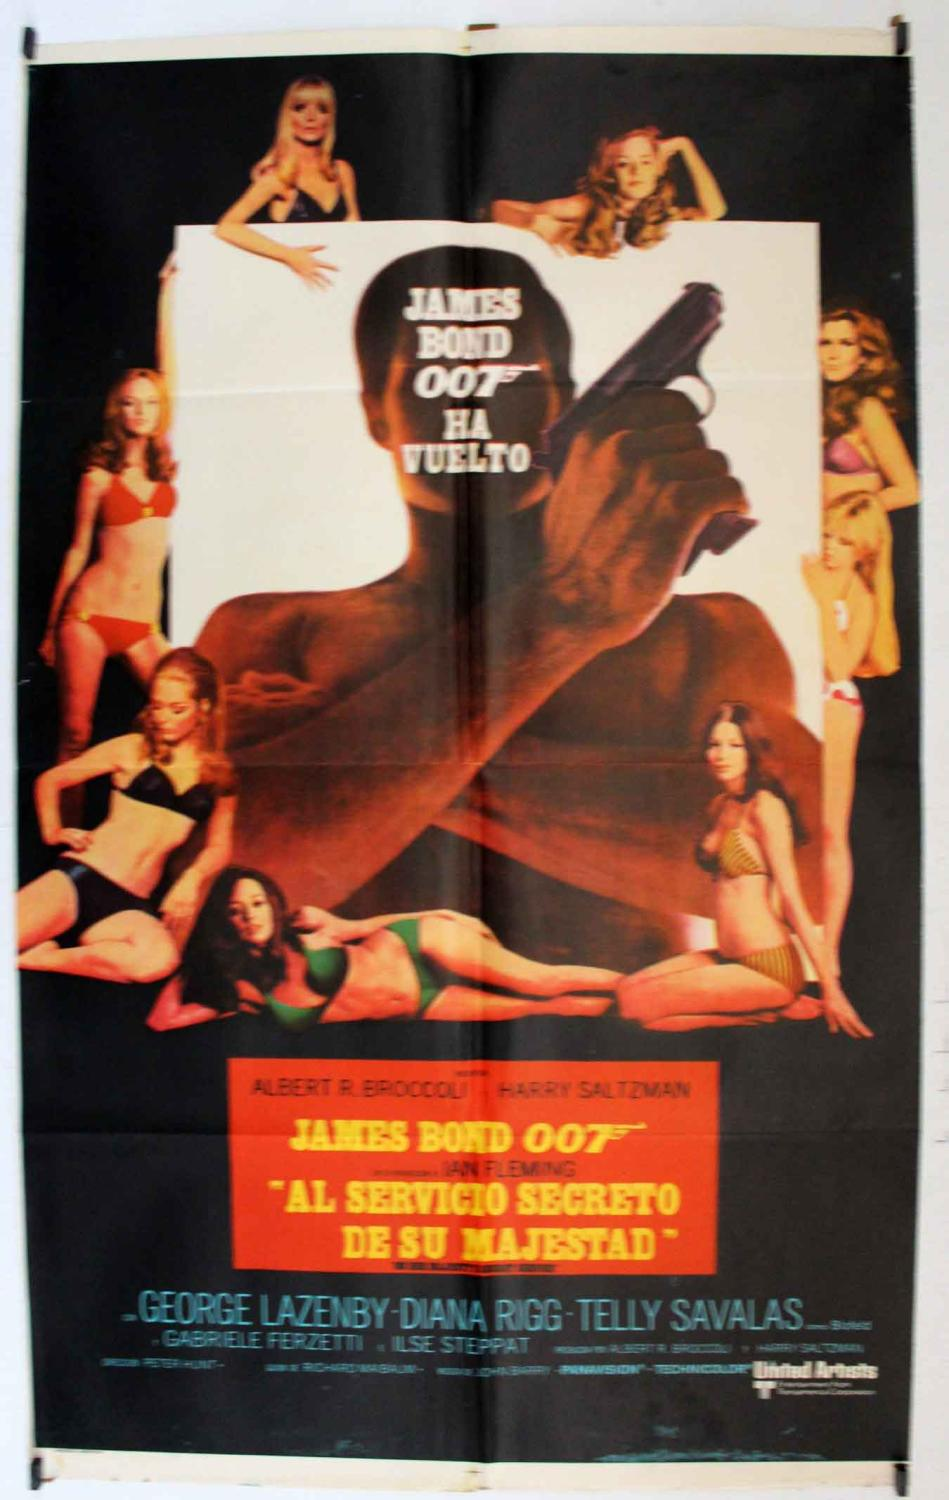 ON HER MAJESTY?S SECRET SERVICE MOVIE POSTER/AL SERVICIO SECRETO DE SU MAJESTAD JAMES BOND 007/POSTER